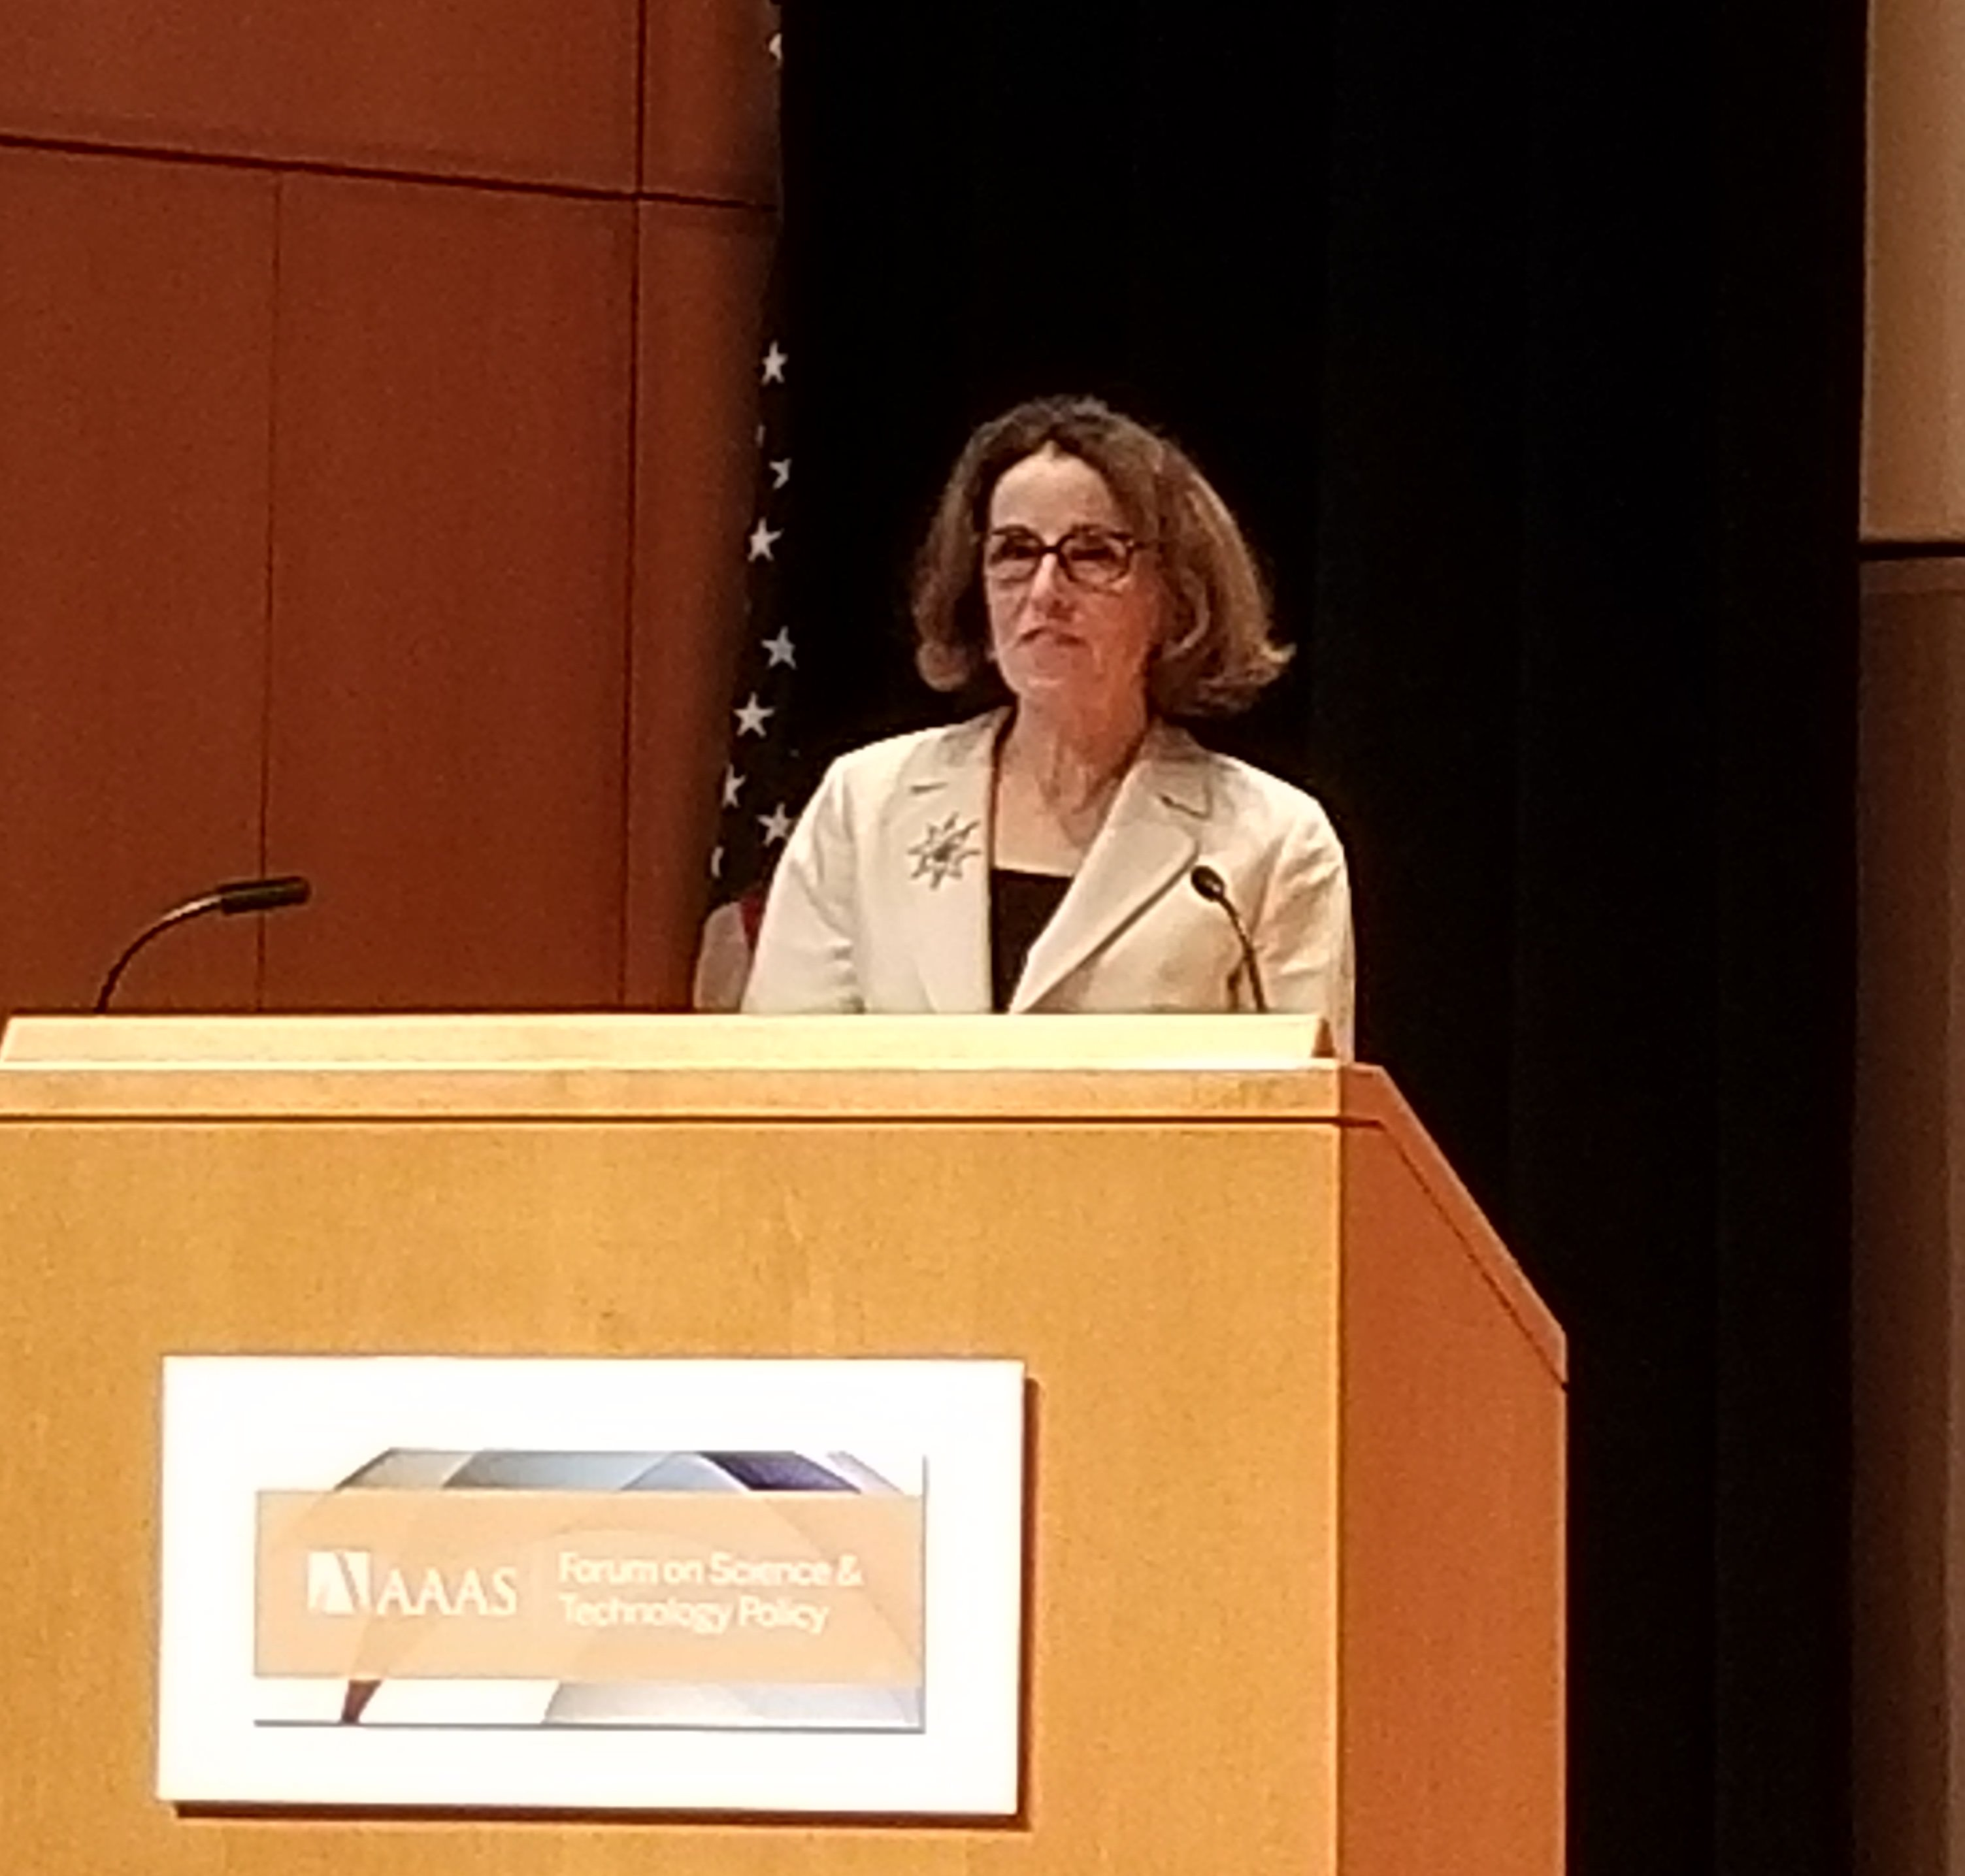 France Cordova, Director, NSF, Addresses the Forum